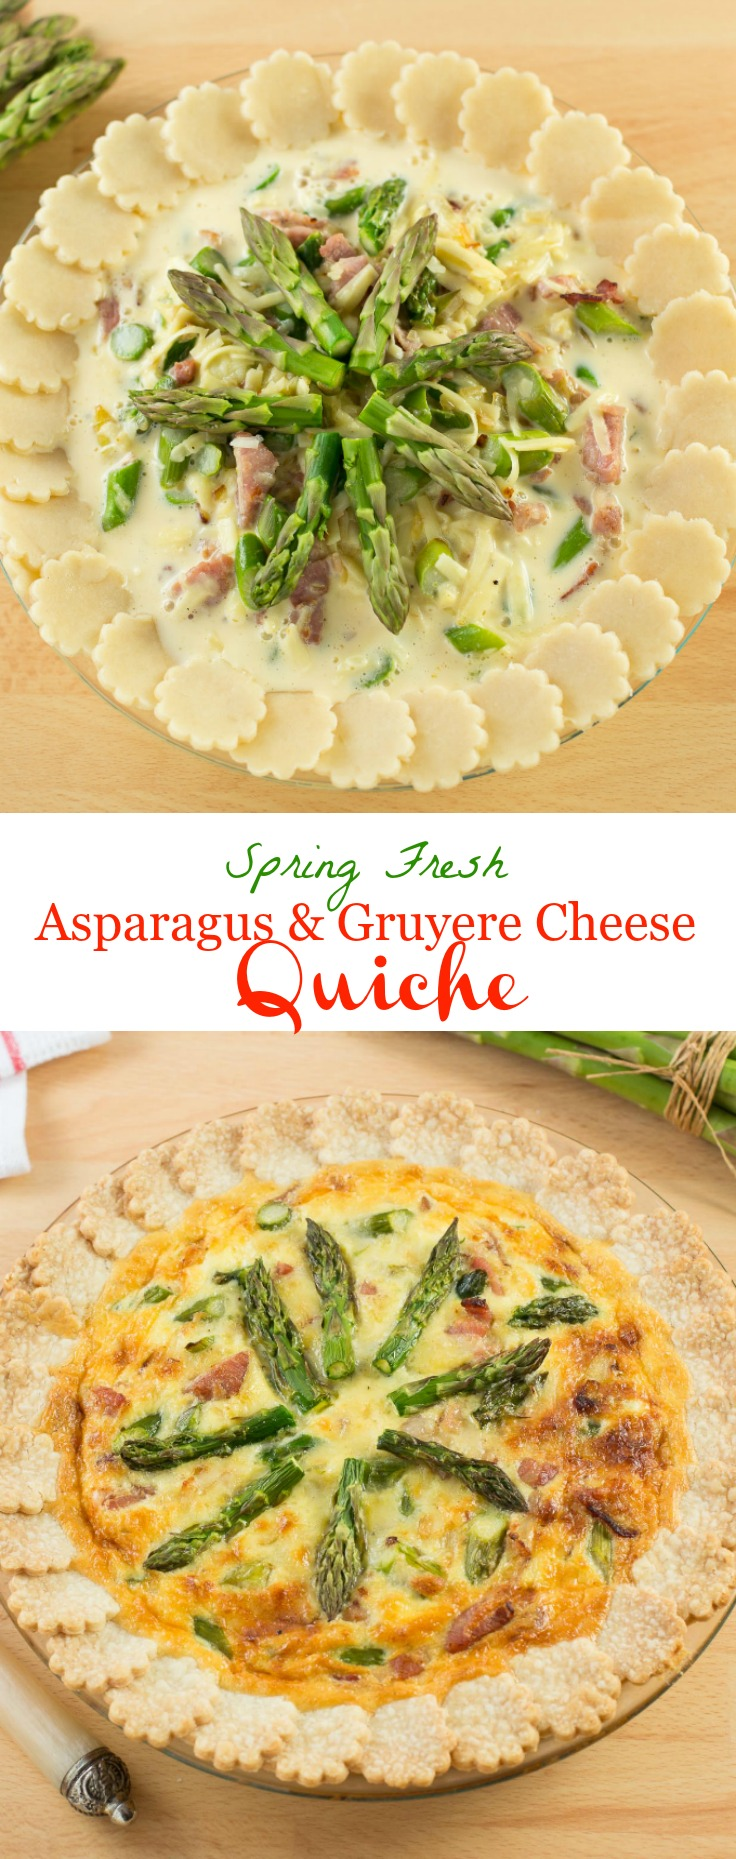 Spring Fresh Asparagus and Gruyere Cheese Quiche